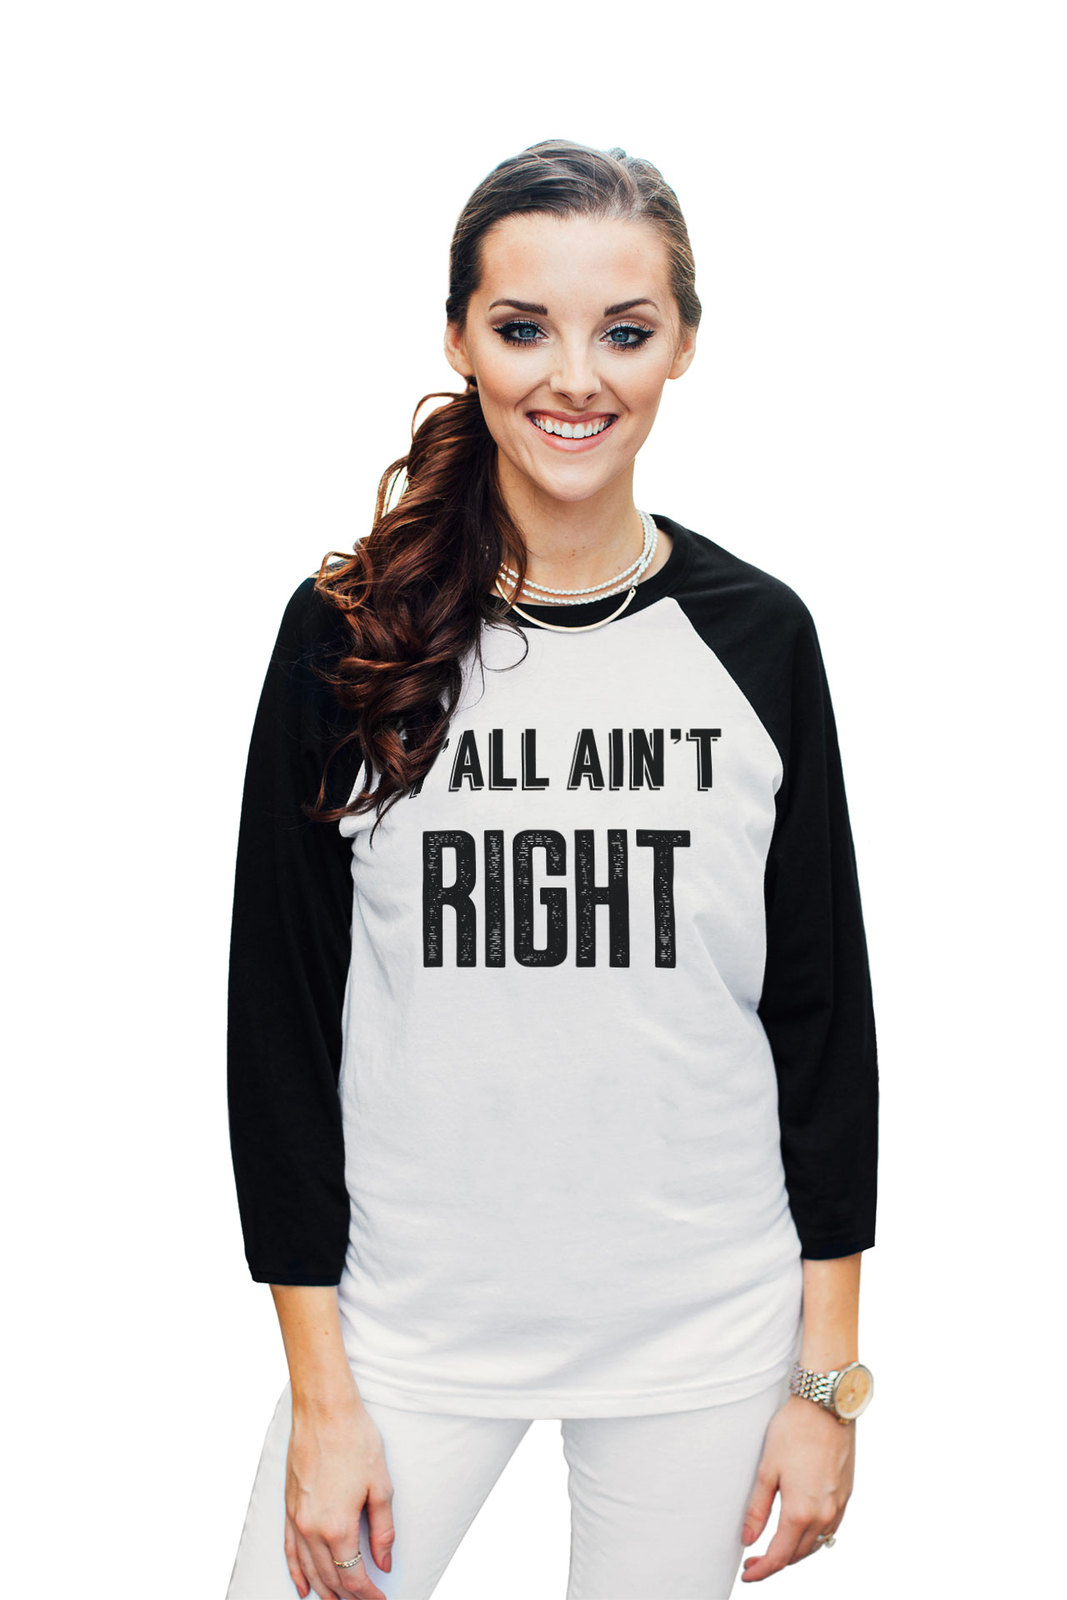 Thread Tank Yall Aint Right Unisex 3/4 Sleeves Baseball Raglan T-Shirt Tee White